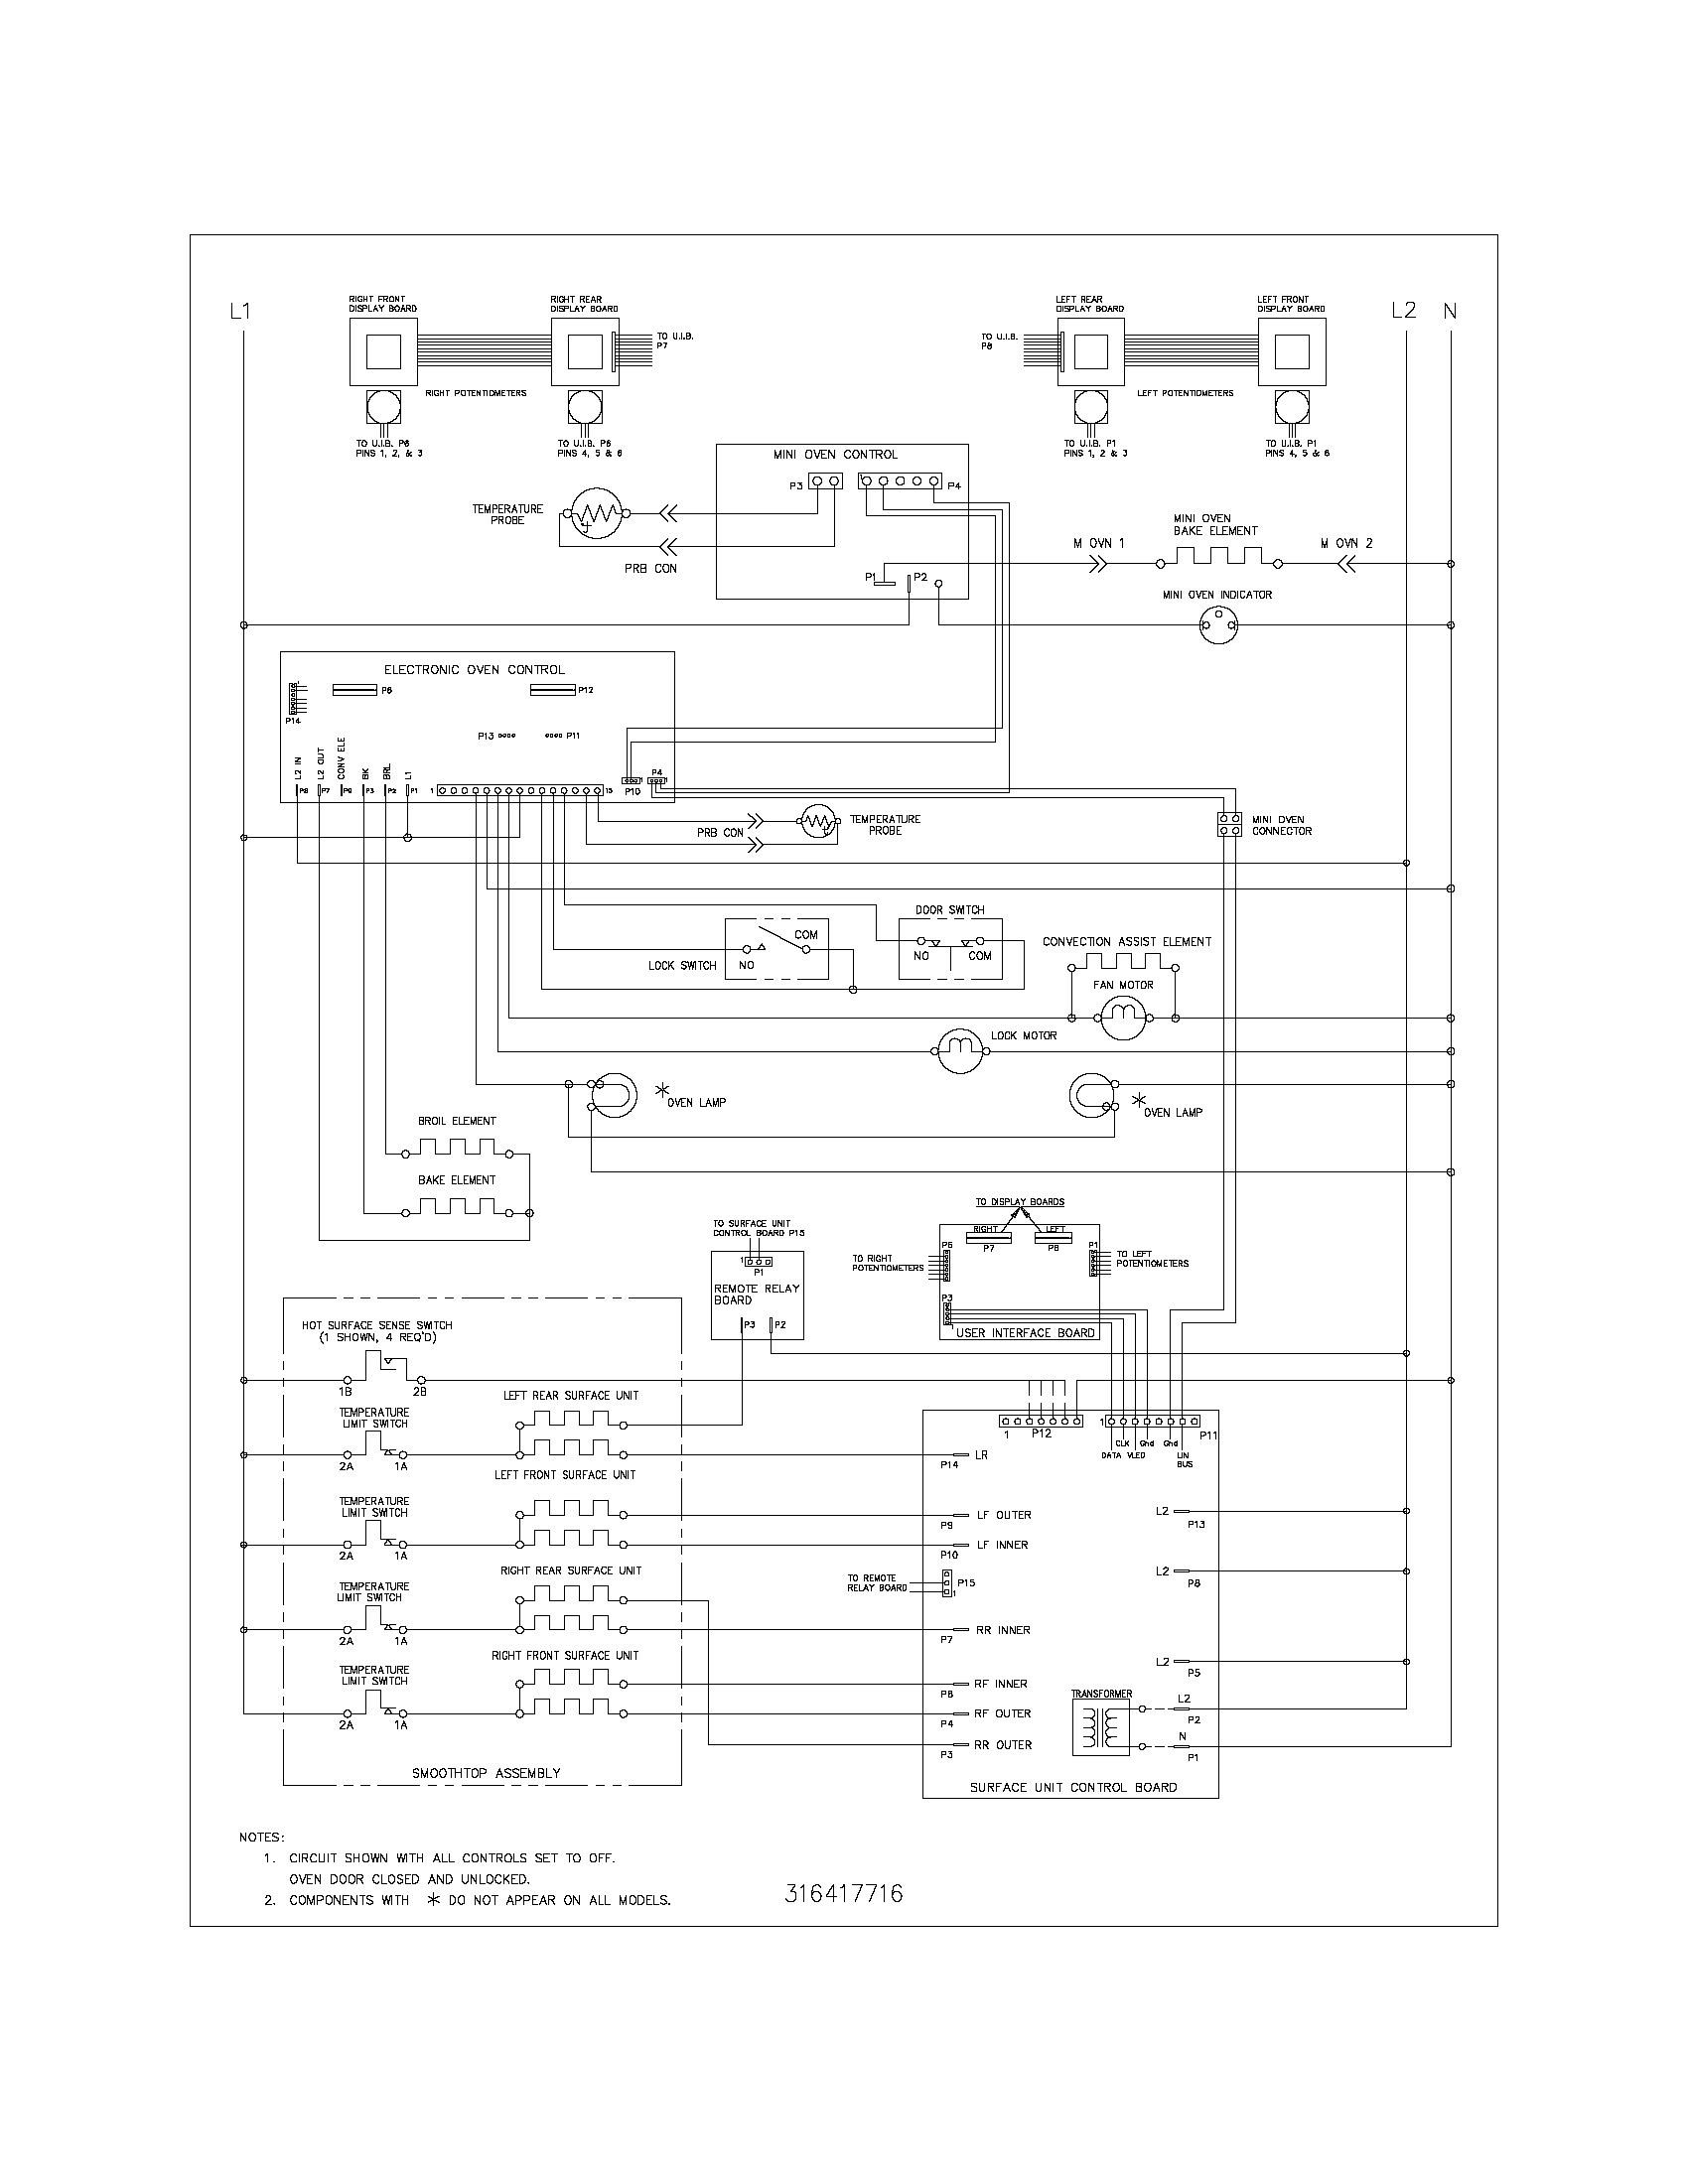 wiring schematic parts odes wiring diagram e z go wiring diagram \u2022 wiring diagrams j vespa vbb wiring diagram at reclaimingppi.co